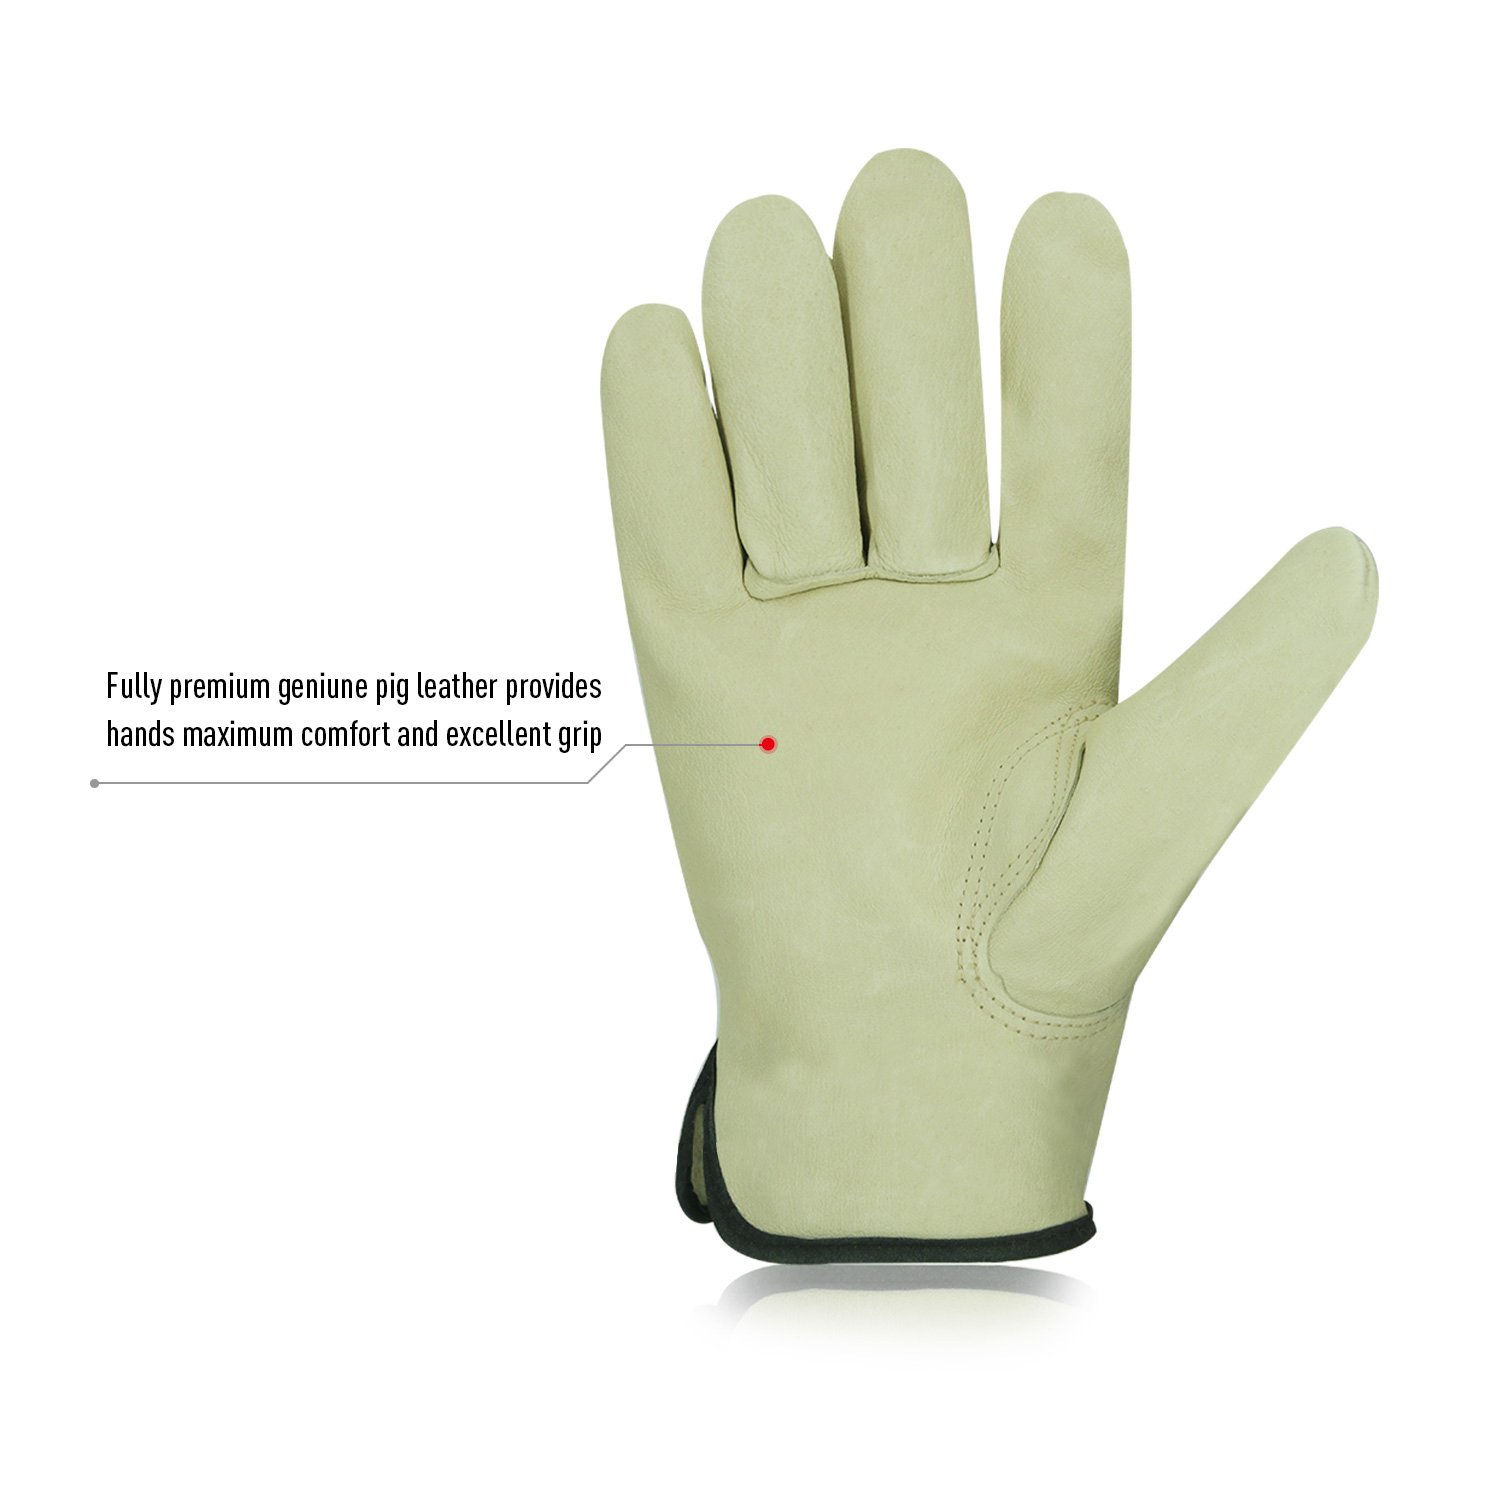 Vgo 3Pairs Unlined Men's Pigskin Leather Work Gloves, Drivers Gloves(Size M,Light Cyan,PA9501) by Vgo... (Image #2)